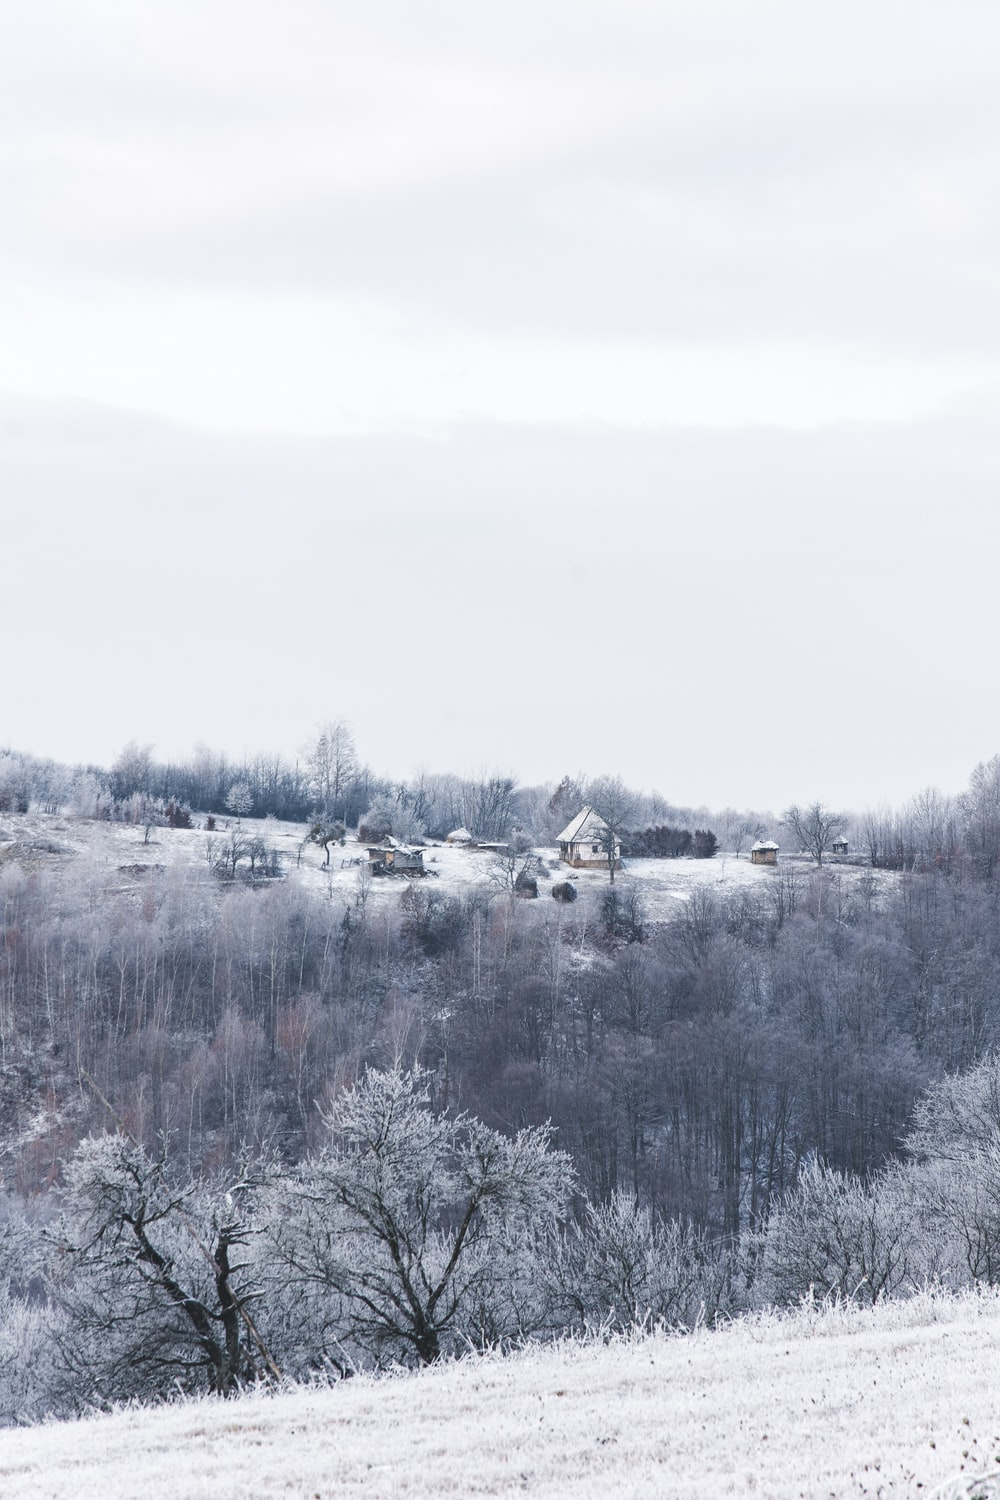 snow covered trees and houses during daytime